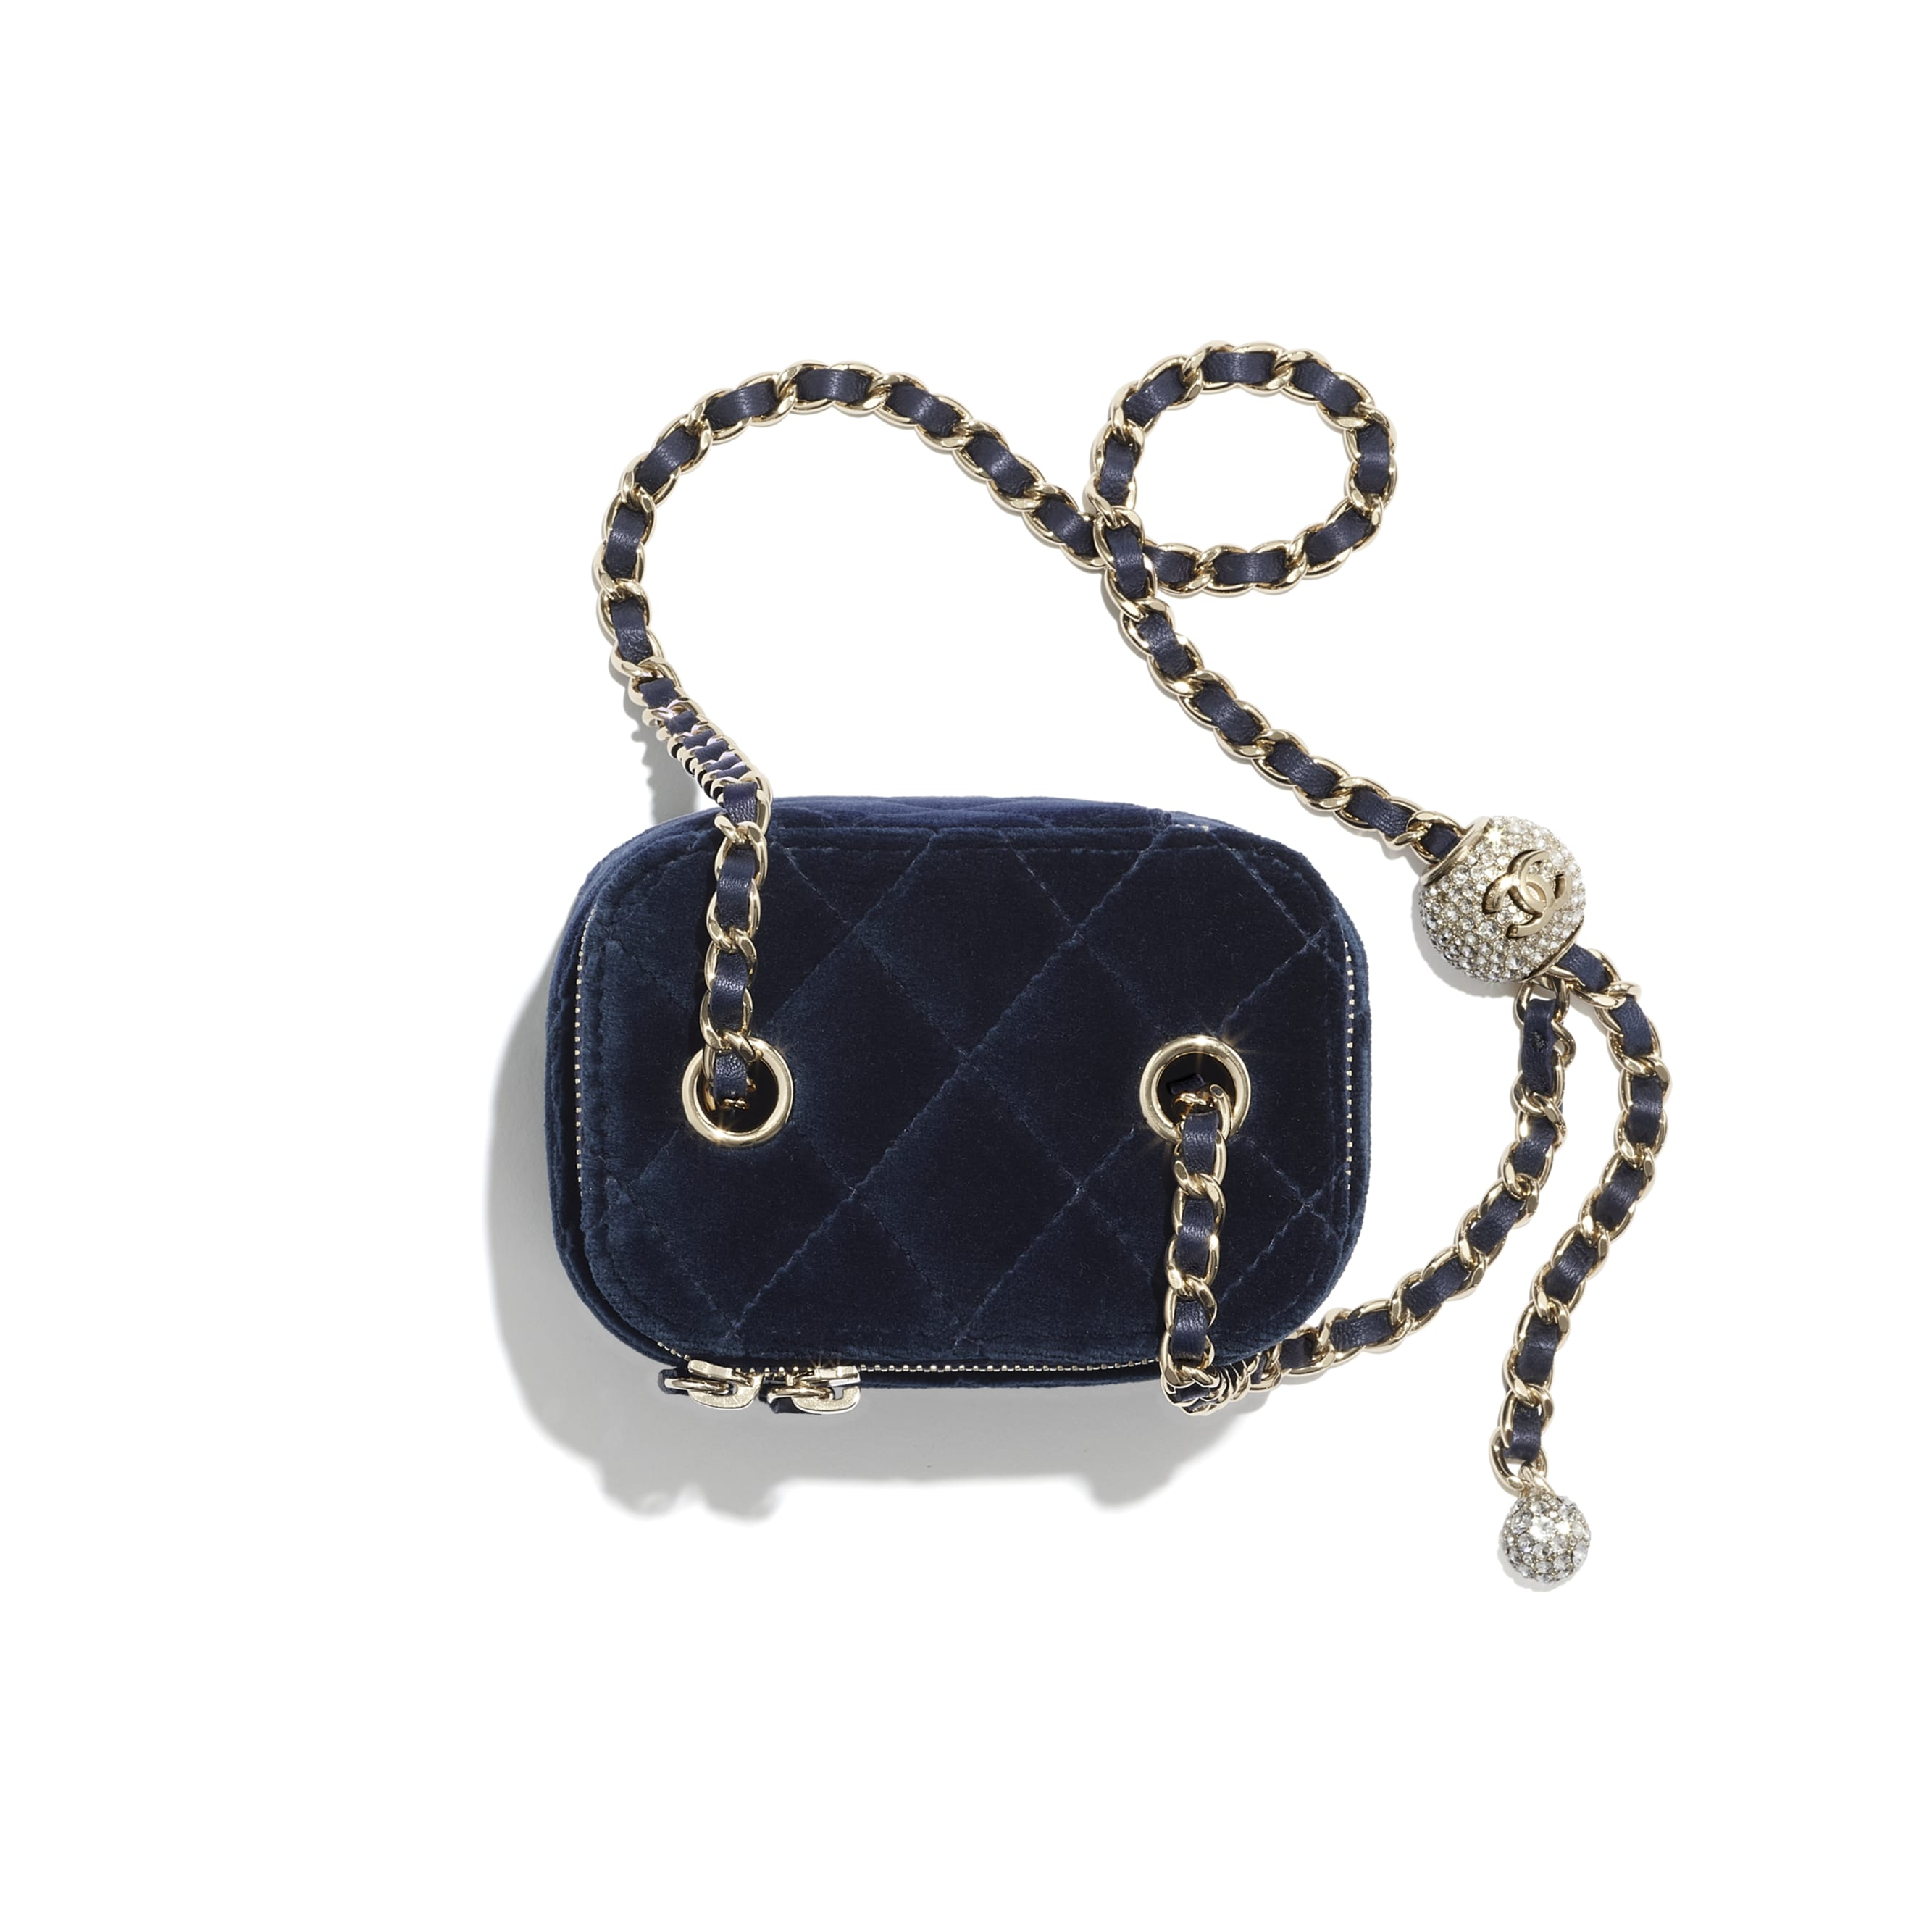 Small Classic Box with Chain - Navy Blue - Velvet, Diamanté & Gold-Tone Metal - CHANEL - Alternative view - see standard sized version